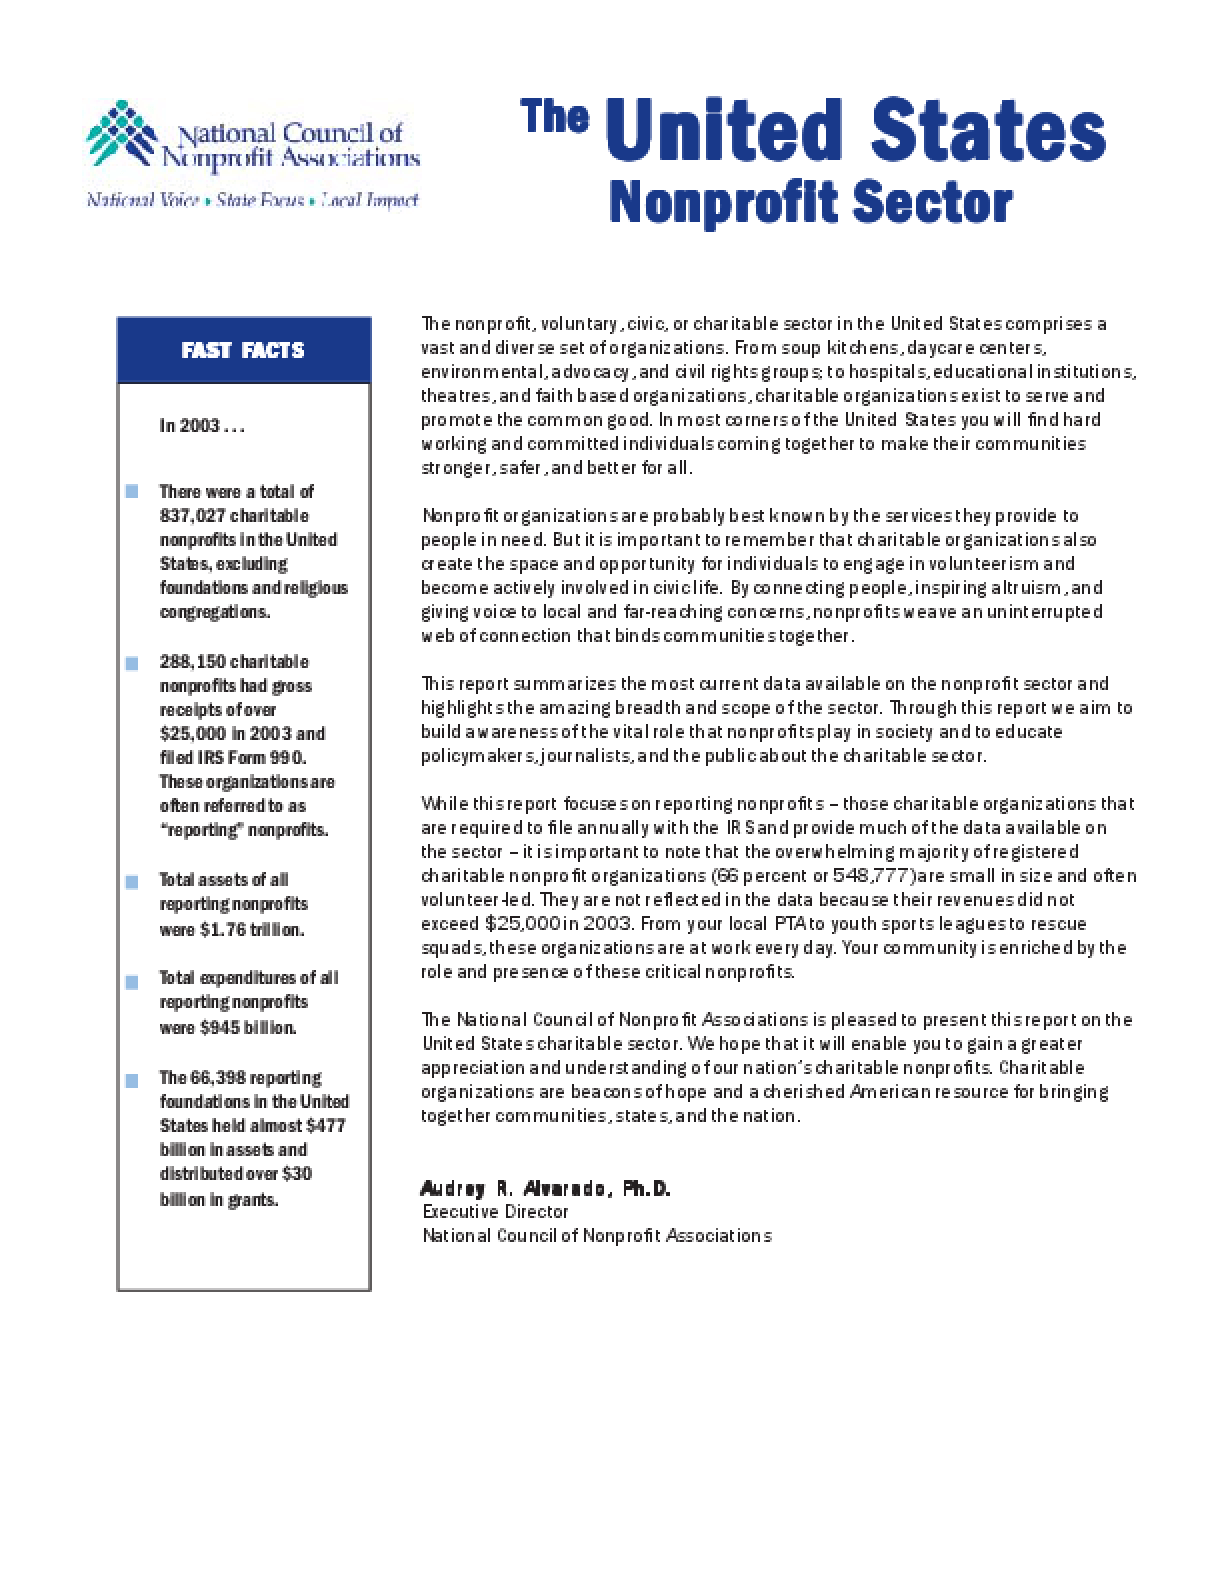 United States Nonprofit Sector 2003